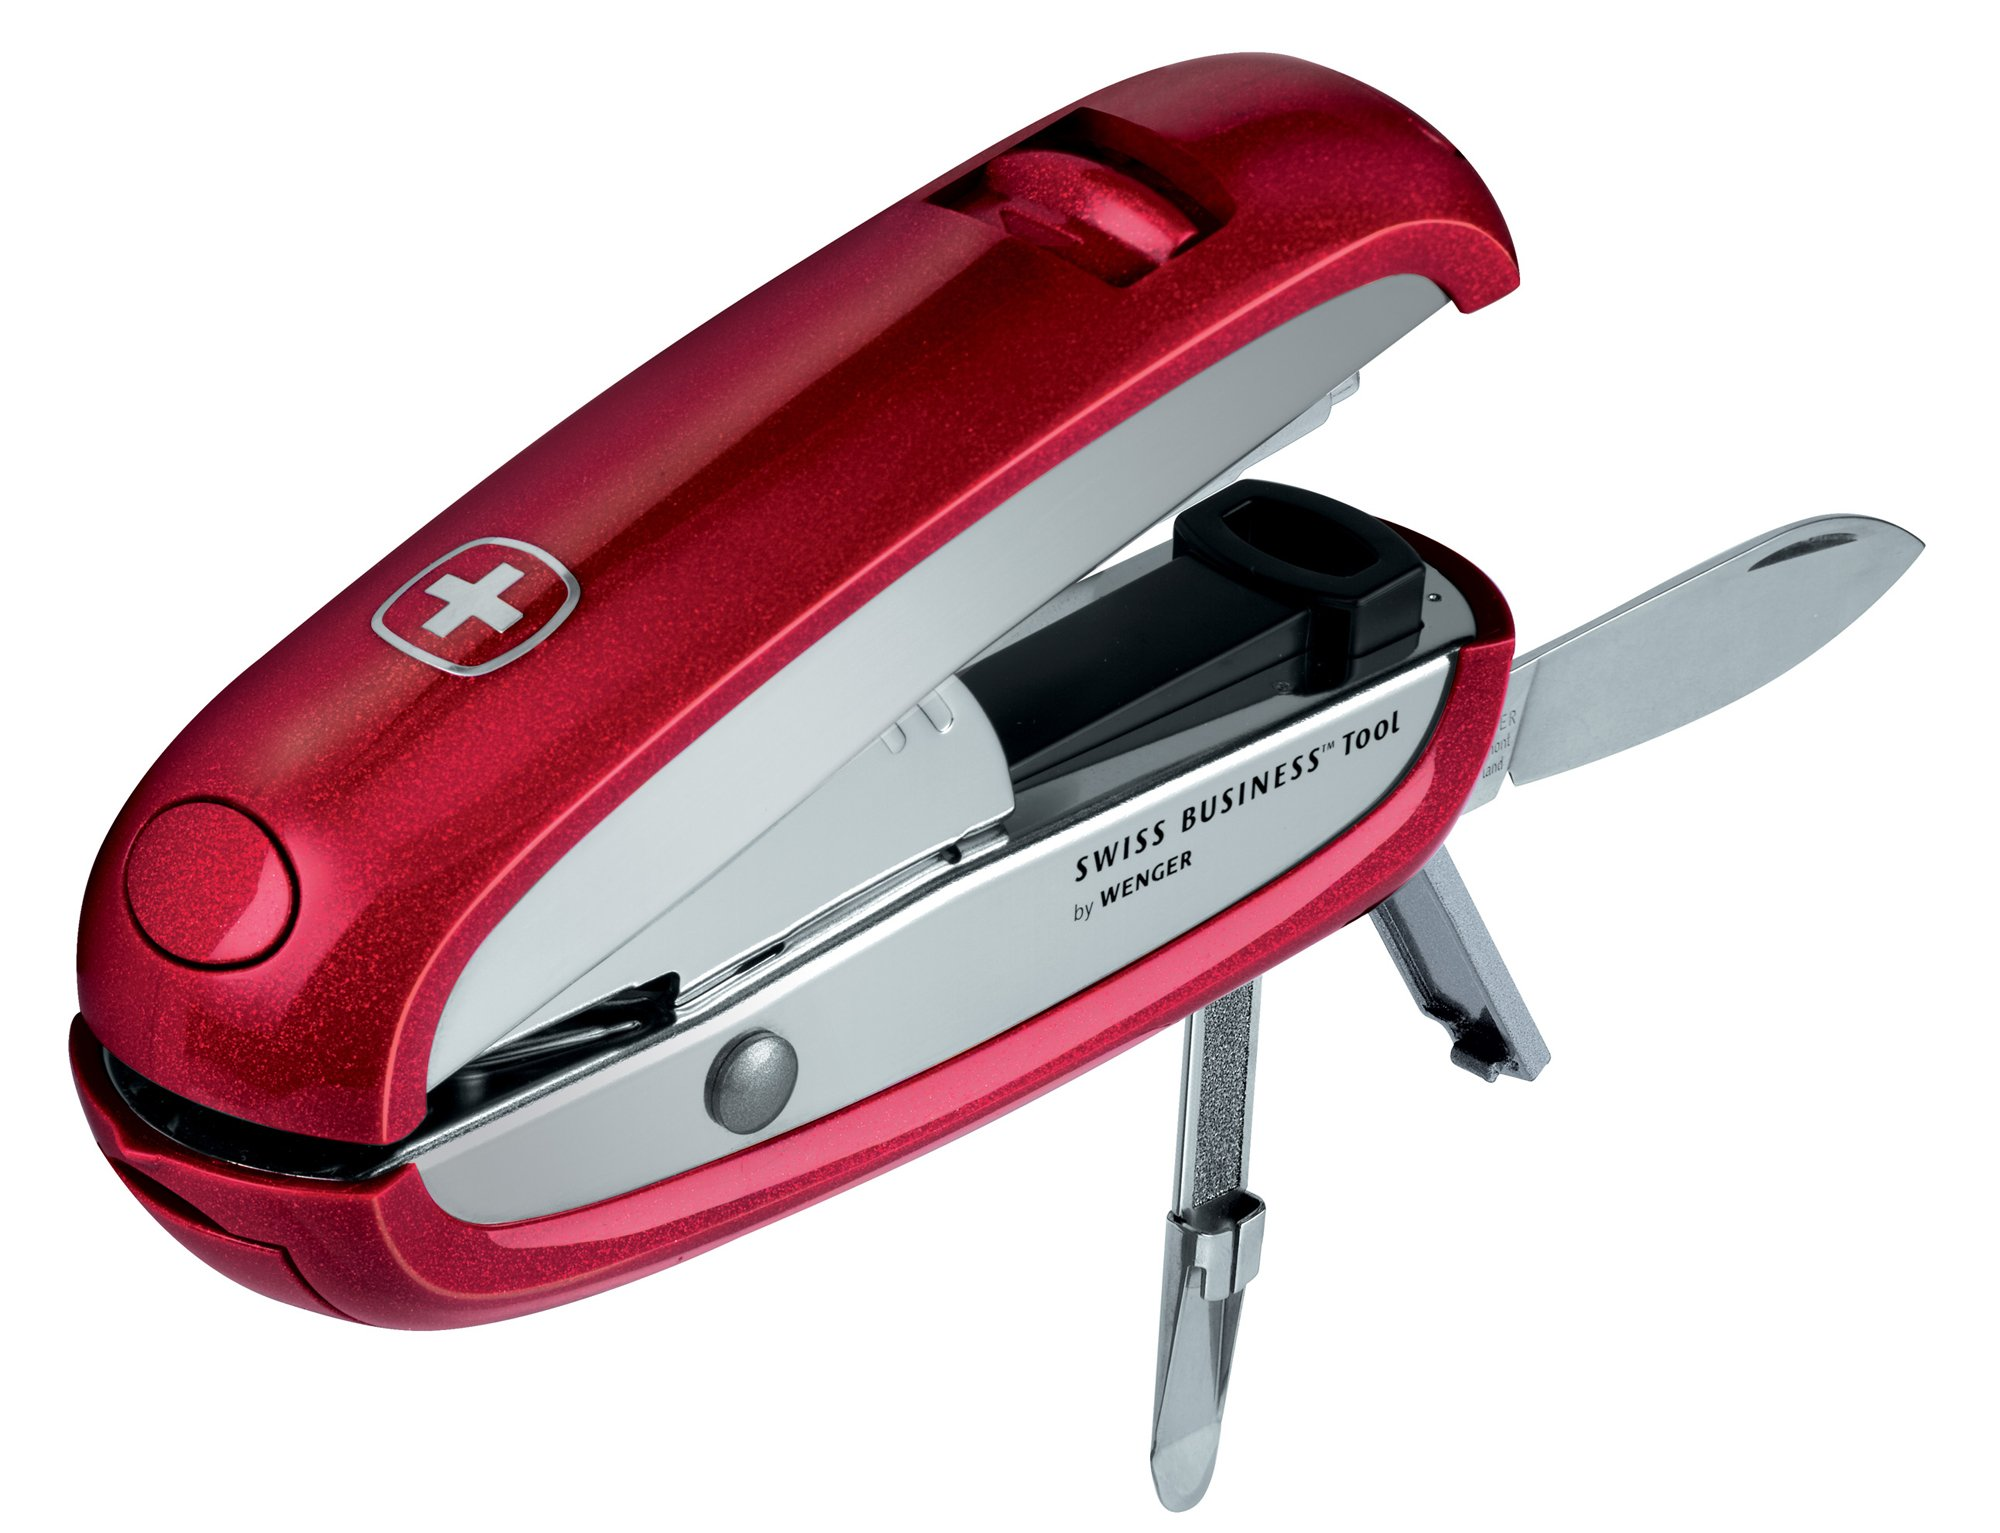 NEW+WENGER RED SWISS BUSINESS TOOL MDL 50